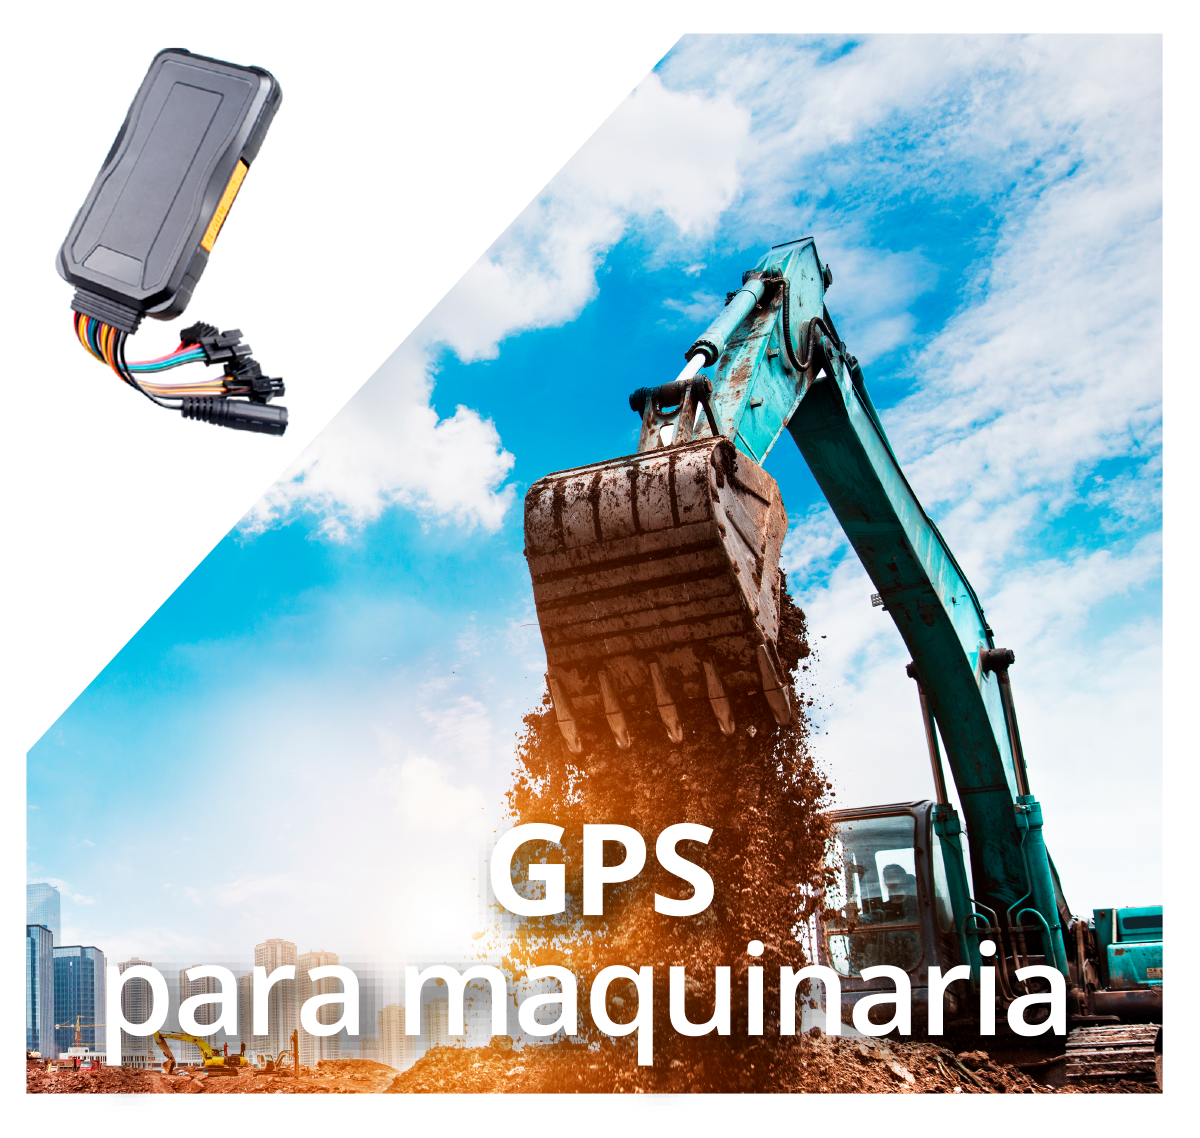 BBOX Security Seguridad guardias virtuales maquinaria 1 - Servicio de Rastreo Satelital y GPS en Guadalajara | BBOX Security